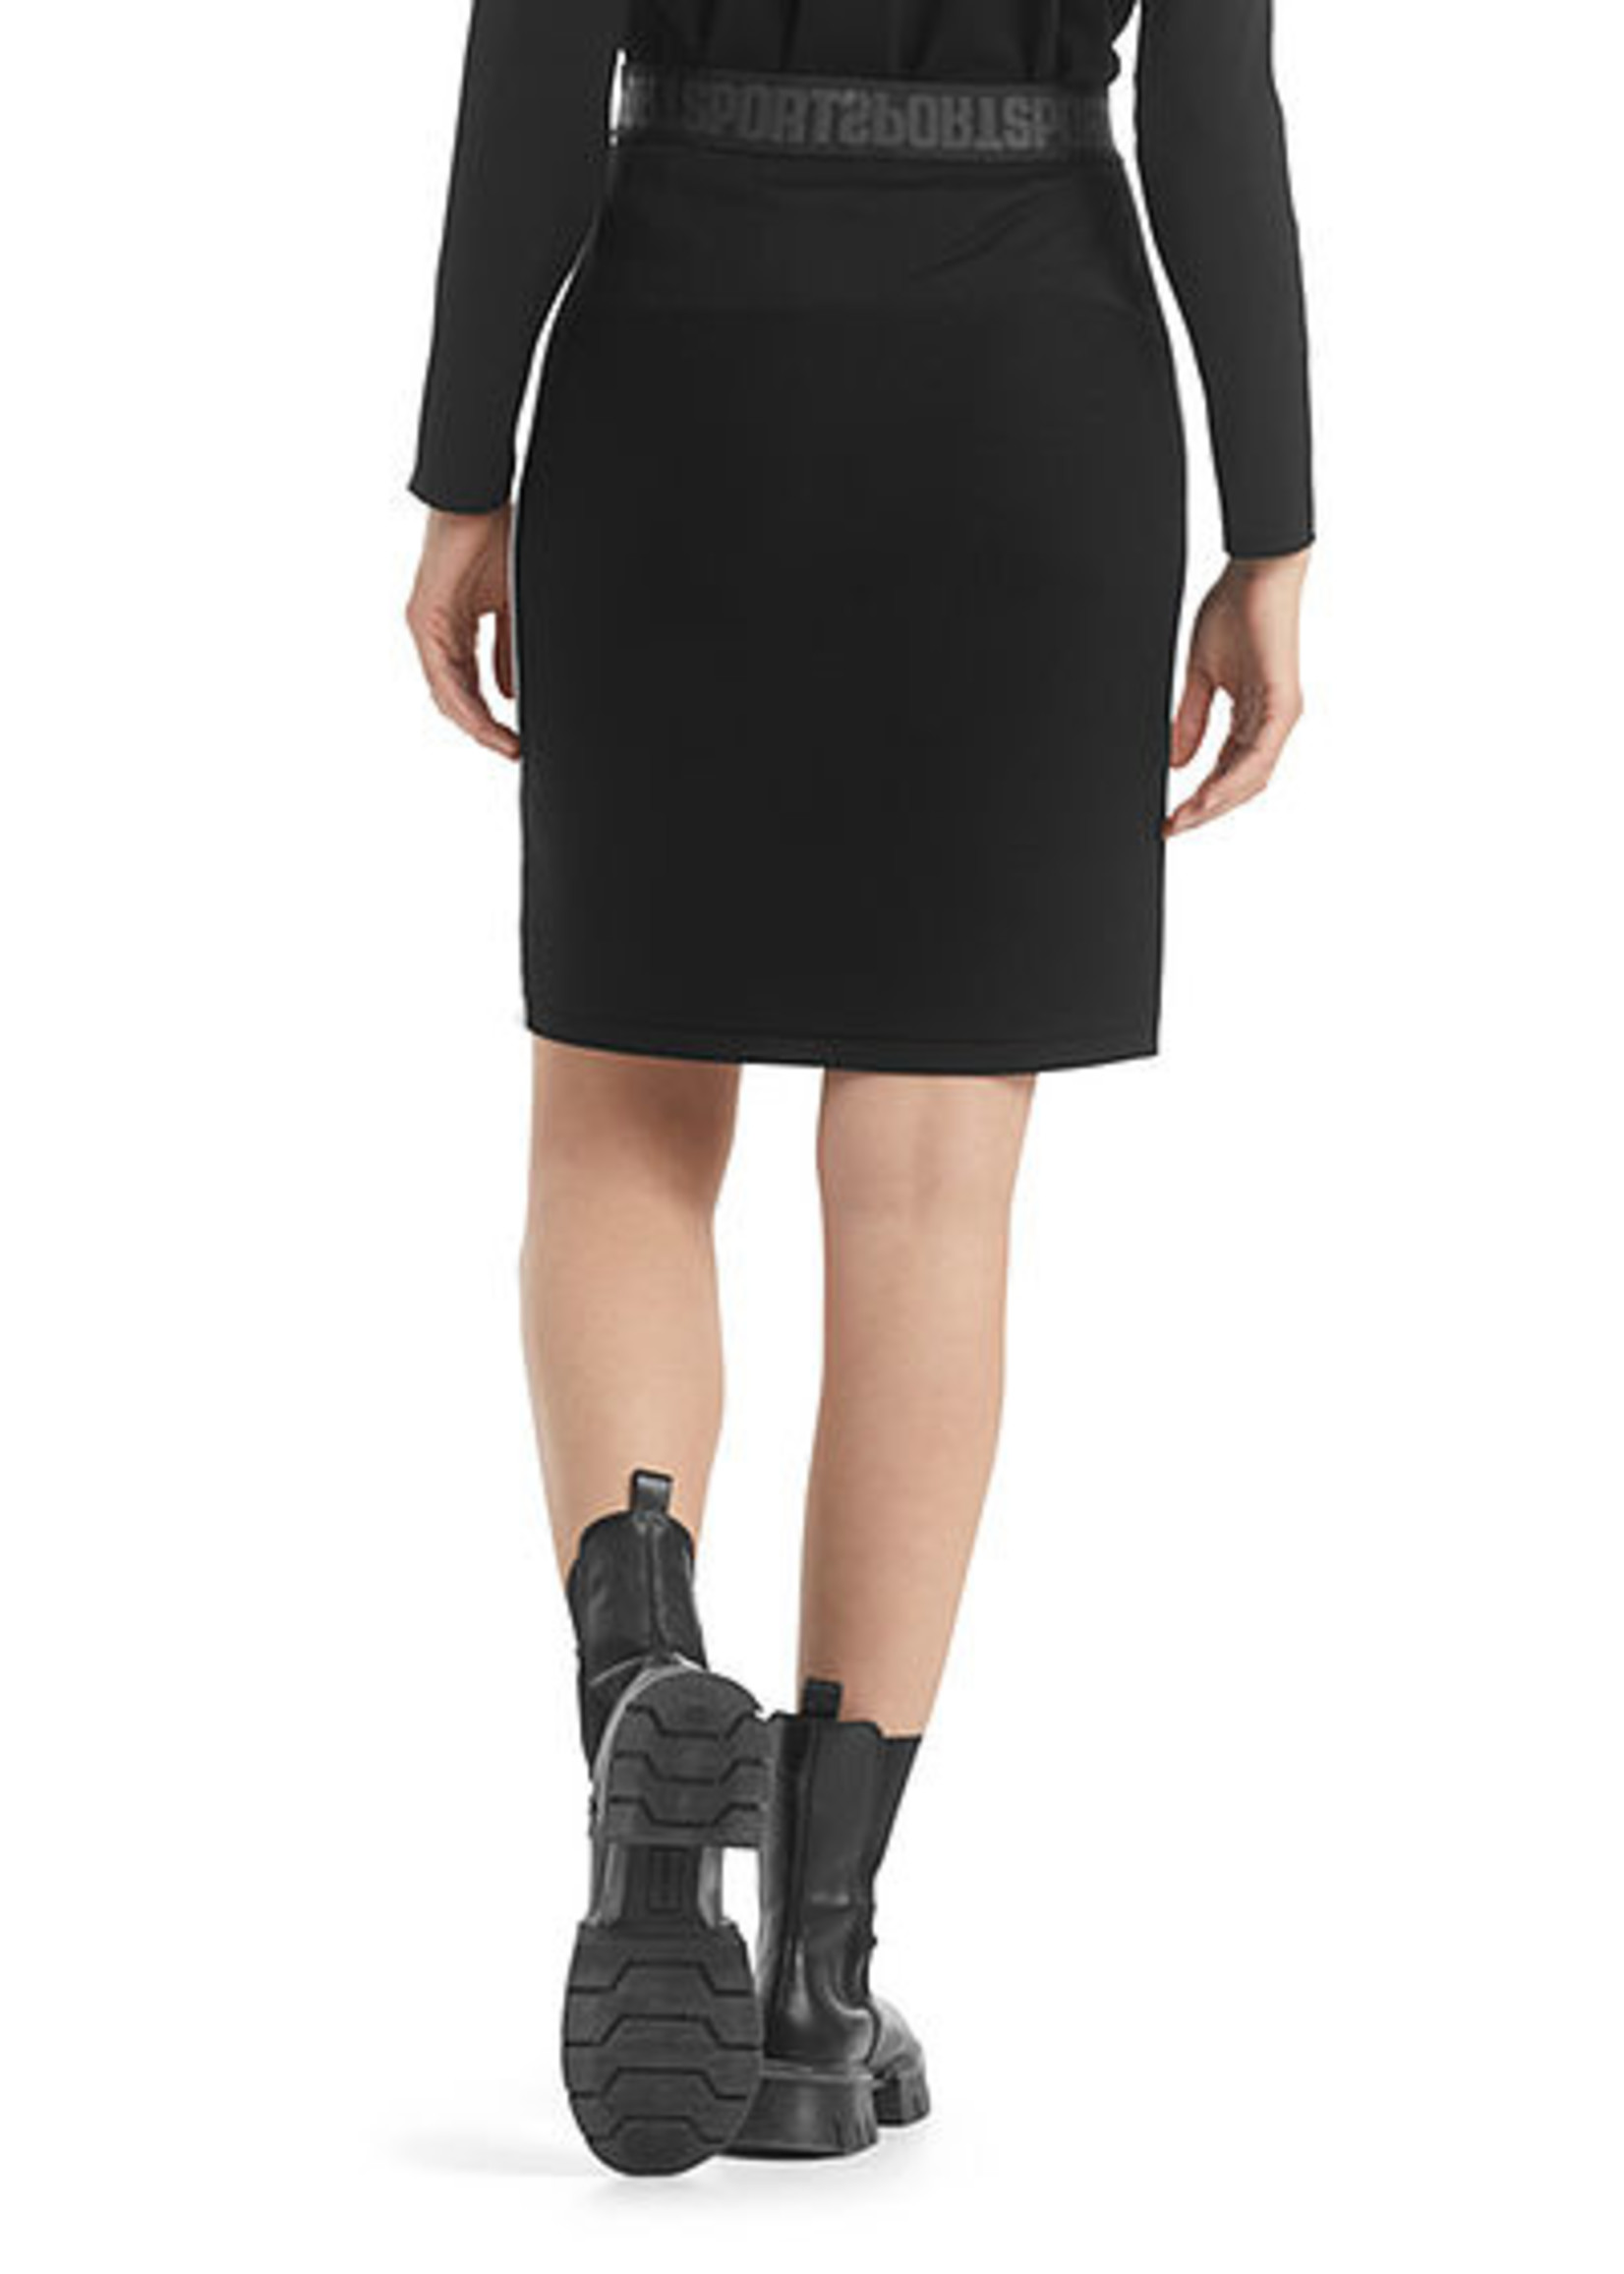 Marccain Sports Rok RS 71.49 M34 black and white